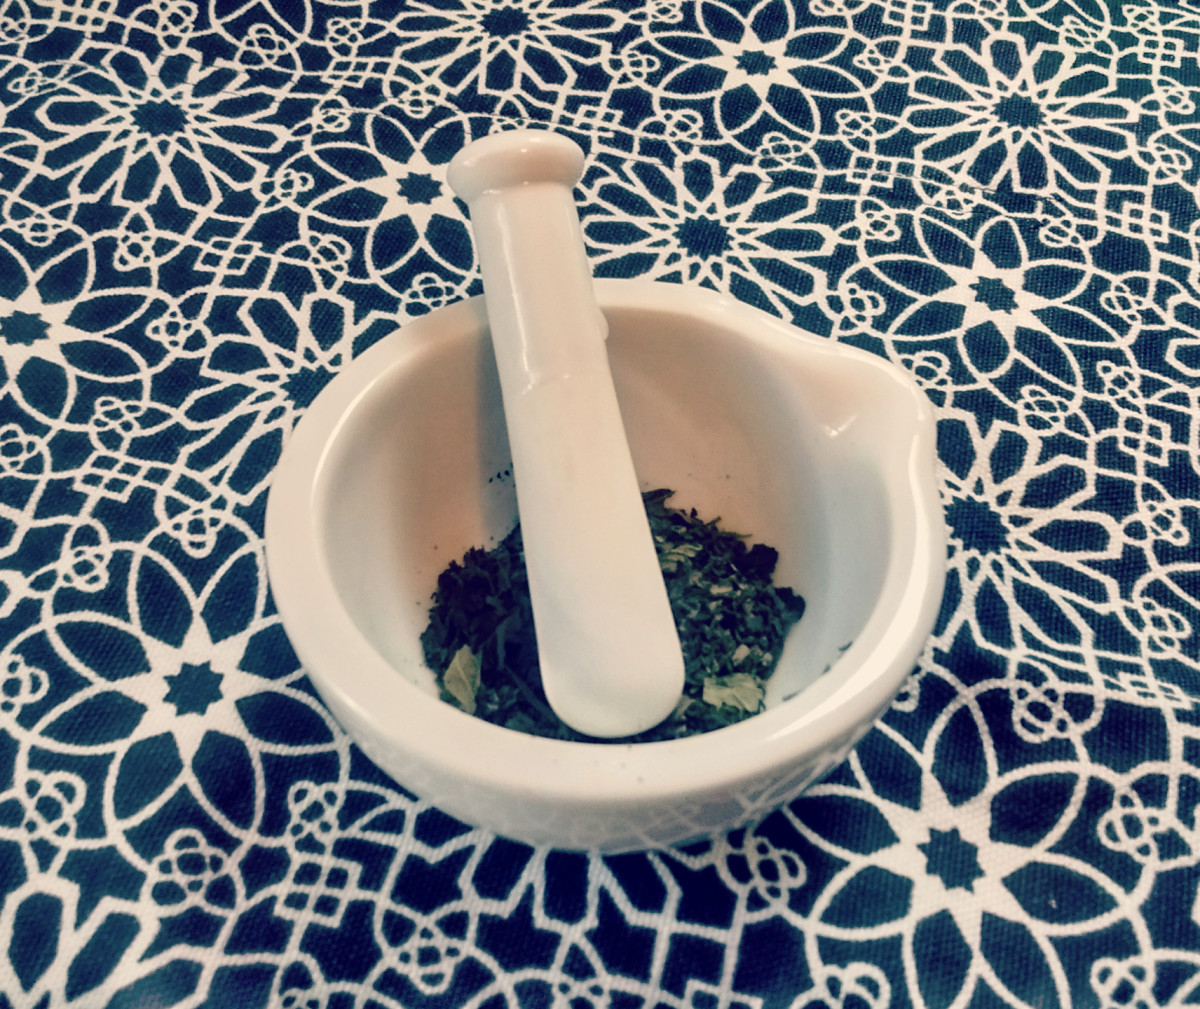 Step 3: Grind the mint. I used a mortar and pestle, but if I was grinding a lot, I may try a coffee or herb grinder.